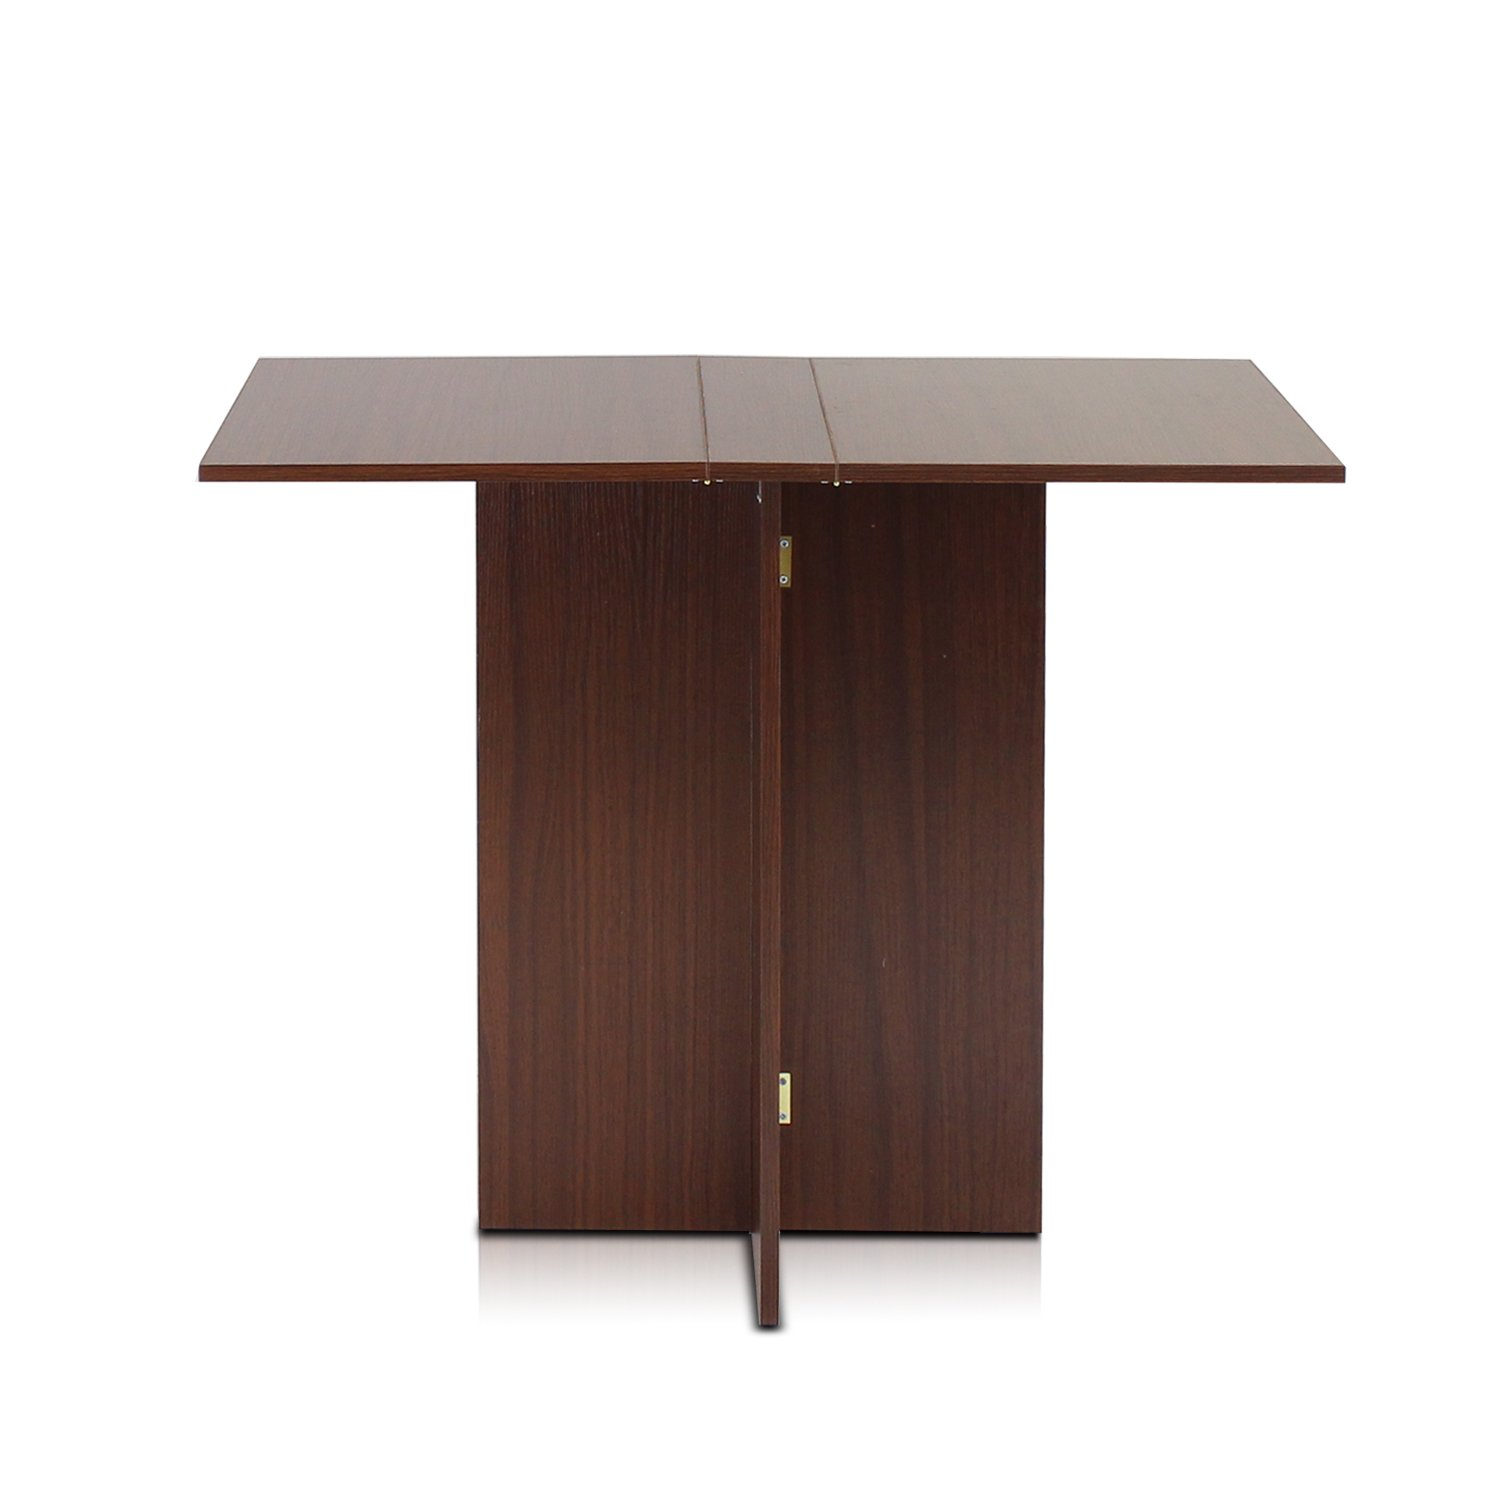 Furinno FNAJ-11072 Boyate Special Simple Folding Table, Walnut by Furinno